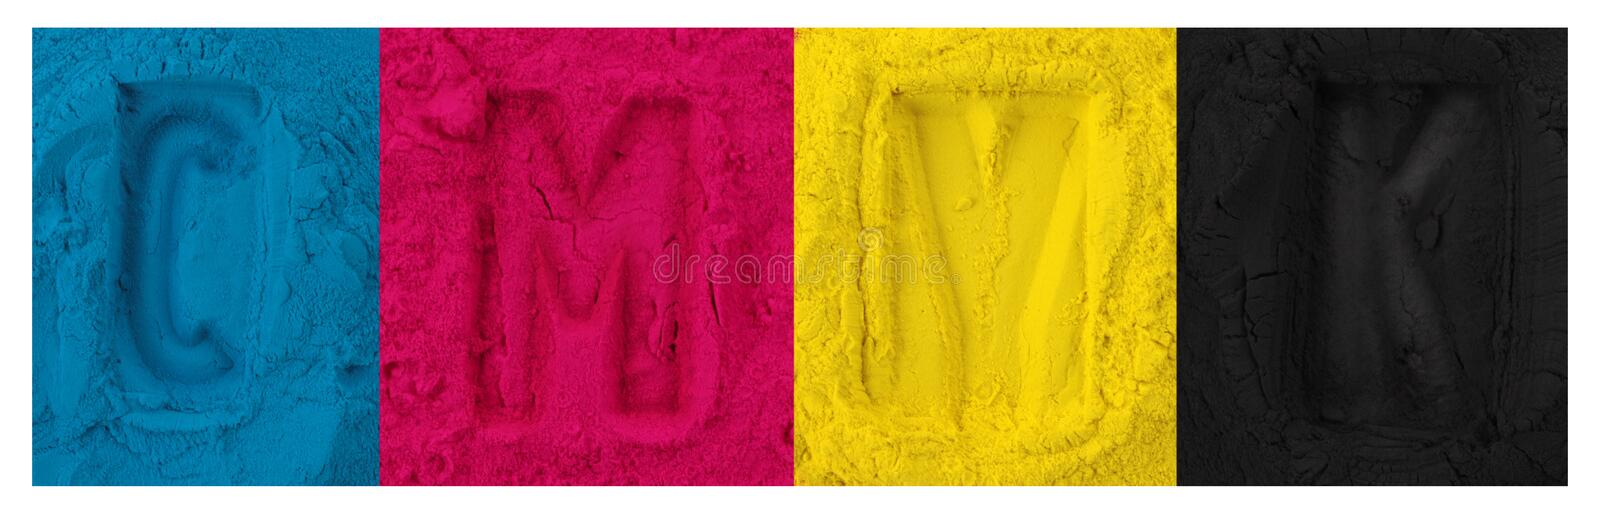 Color copier toner. Cyan magenta yellow isolated on white stock images